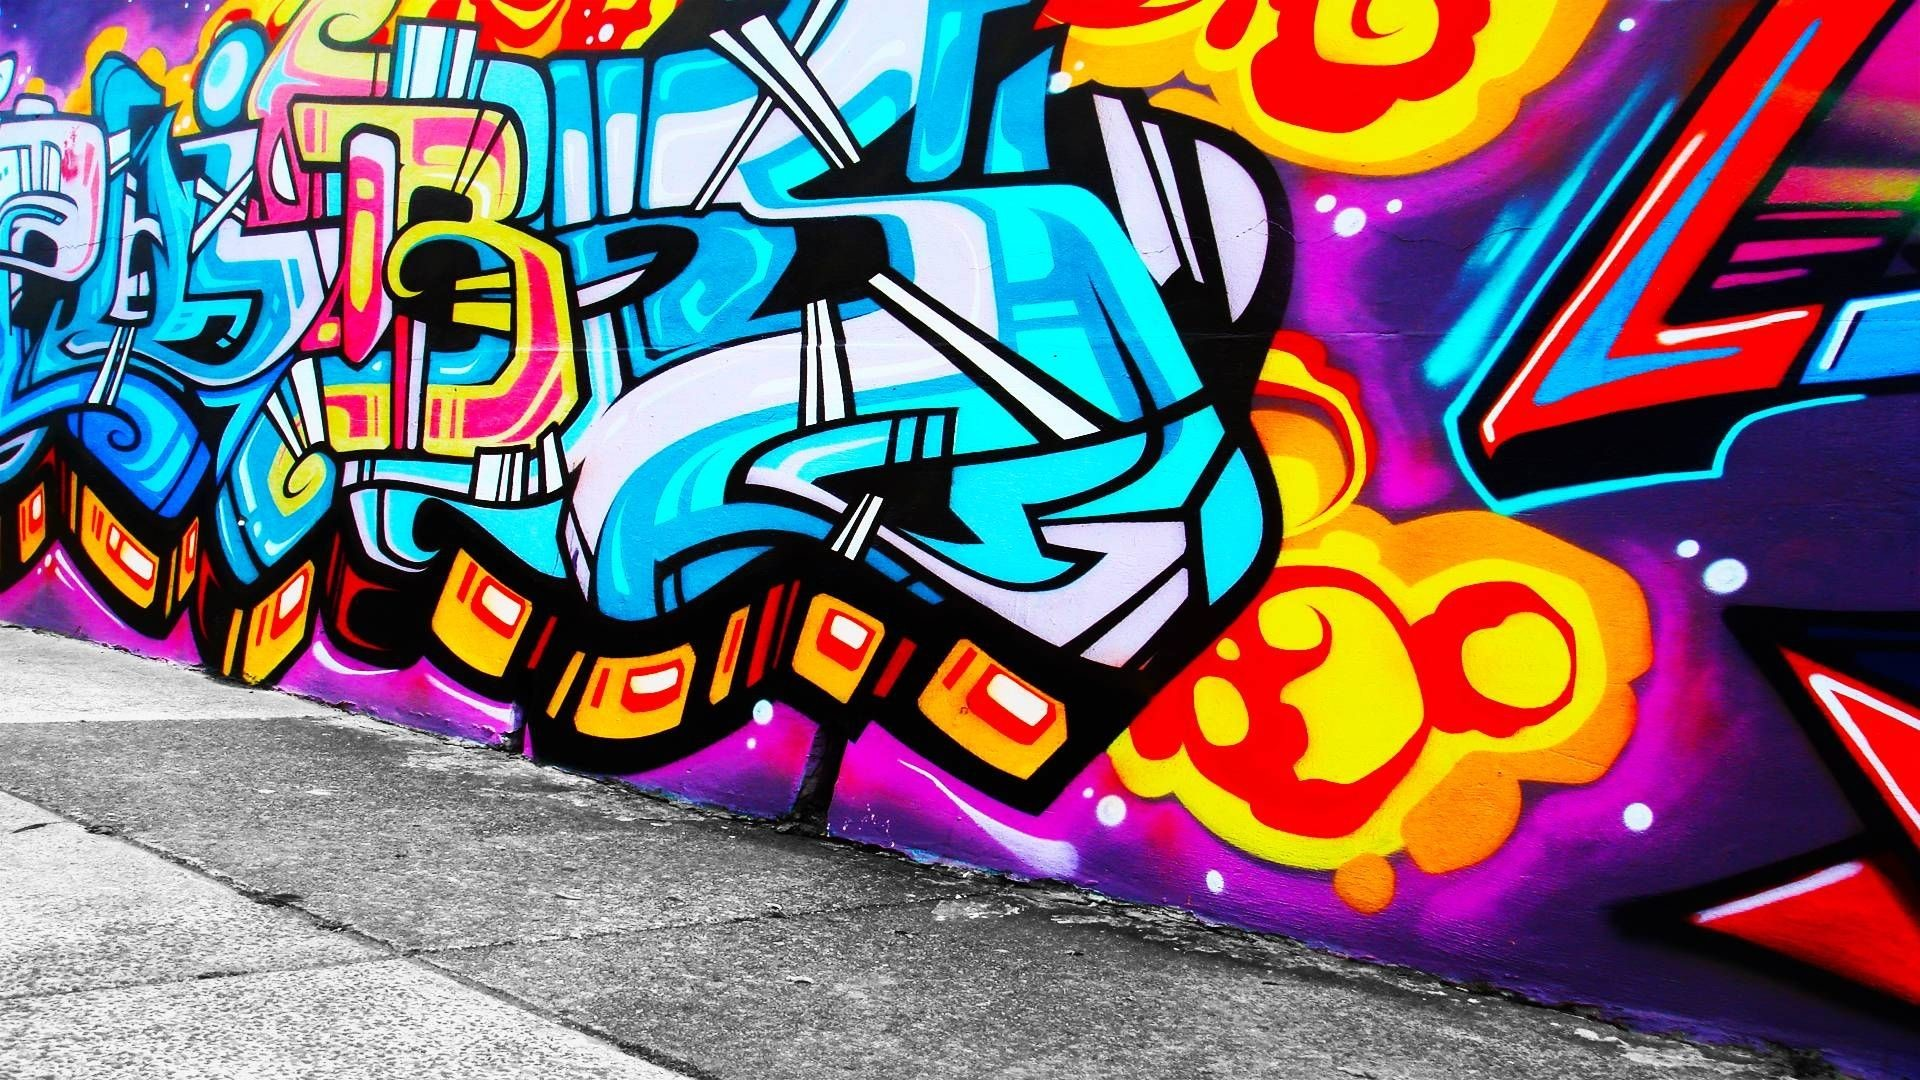 Hd Graffiti Wallpapers 86 Background Pictures